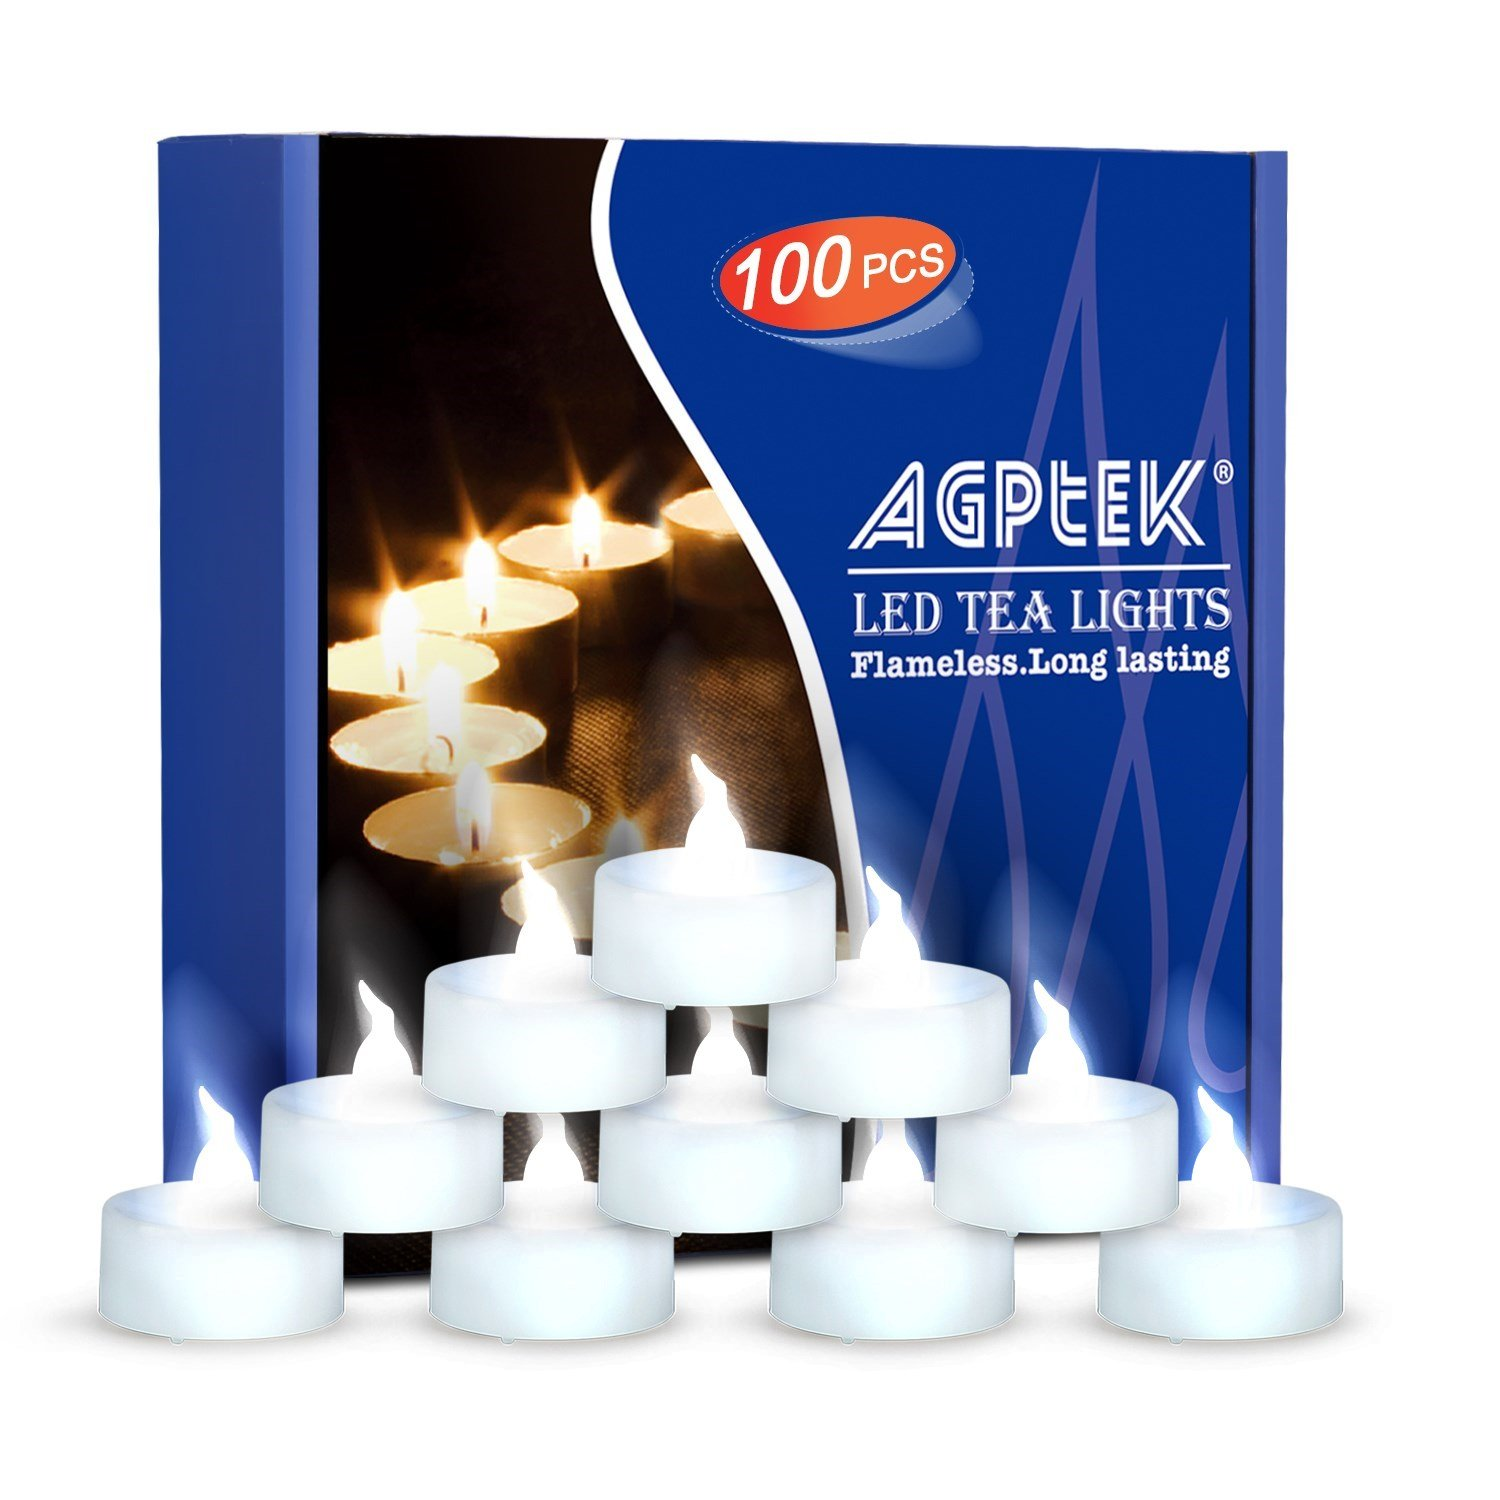 AGPtEK Tea Lights,100 Pack Flameless LED Candles Battery Operated Tealight Candles No Flicker Long Lasting Tealight for Wedding Holiday Party Home Decoration(Cool White) by AGPTEK